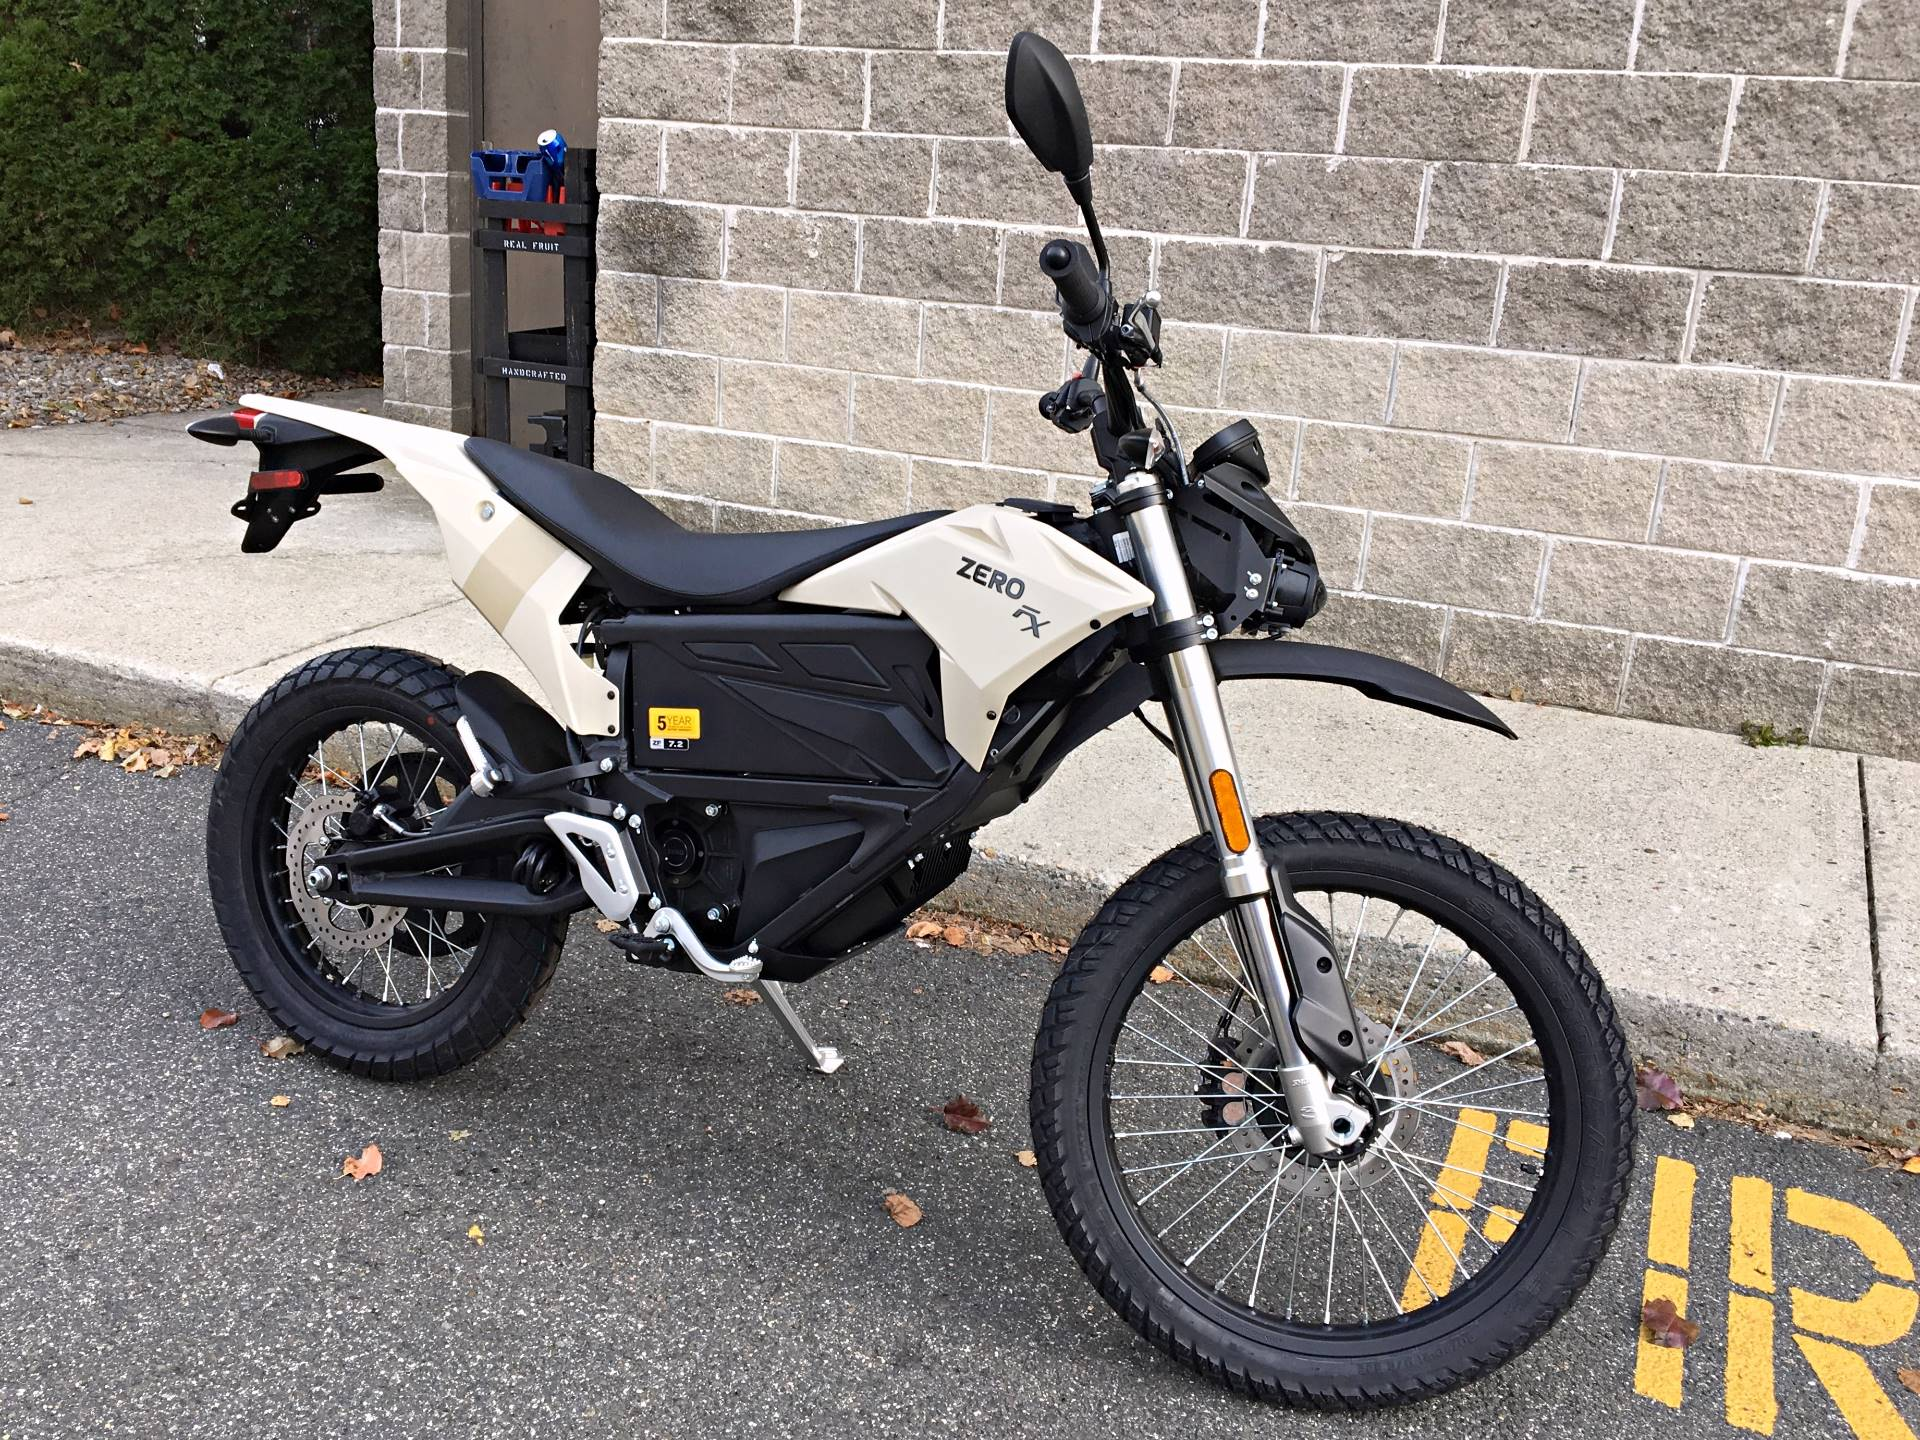 2019 Zero Motorcycles Fx Zf7 2 Integrated In Enfield Connecticut